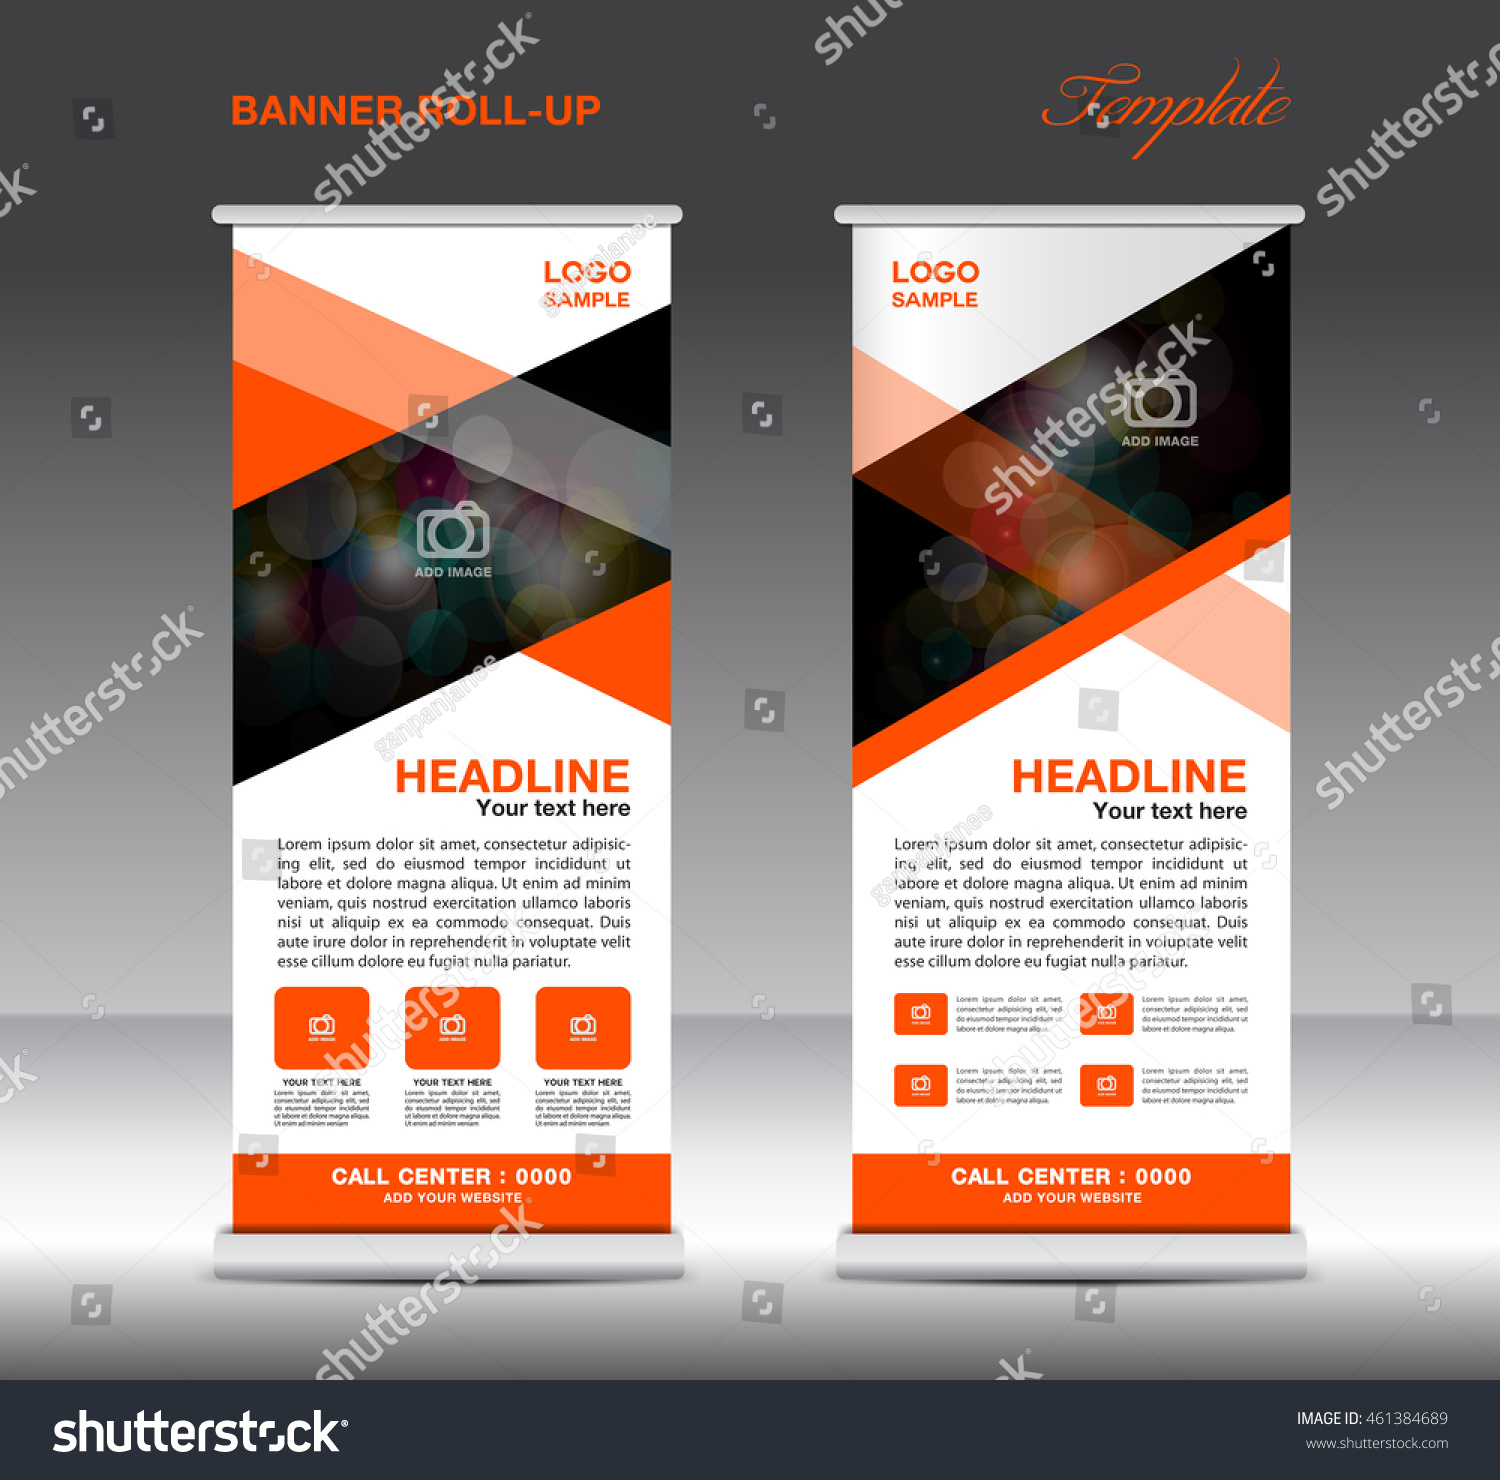 orange roll banner template vector standy stock vector 461384689 orange roll up banner template vector standy design display advertisement flyer for corporate